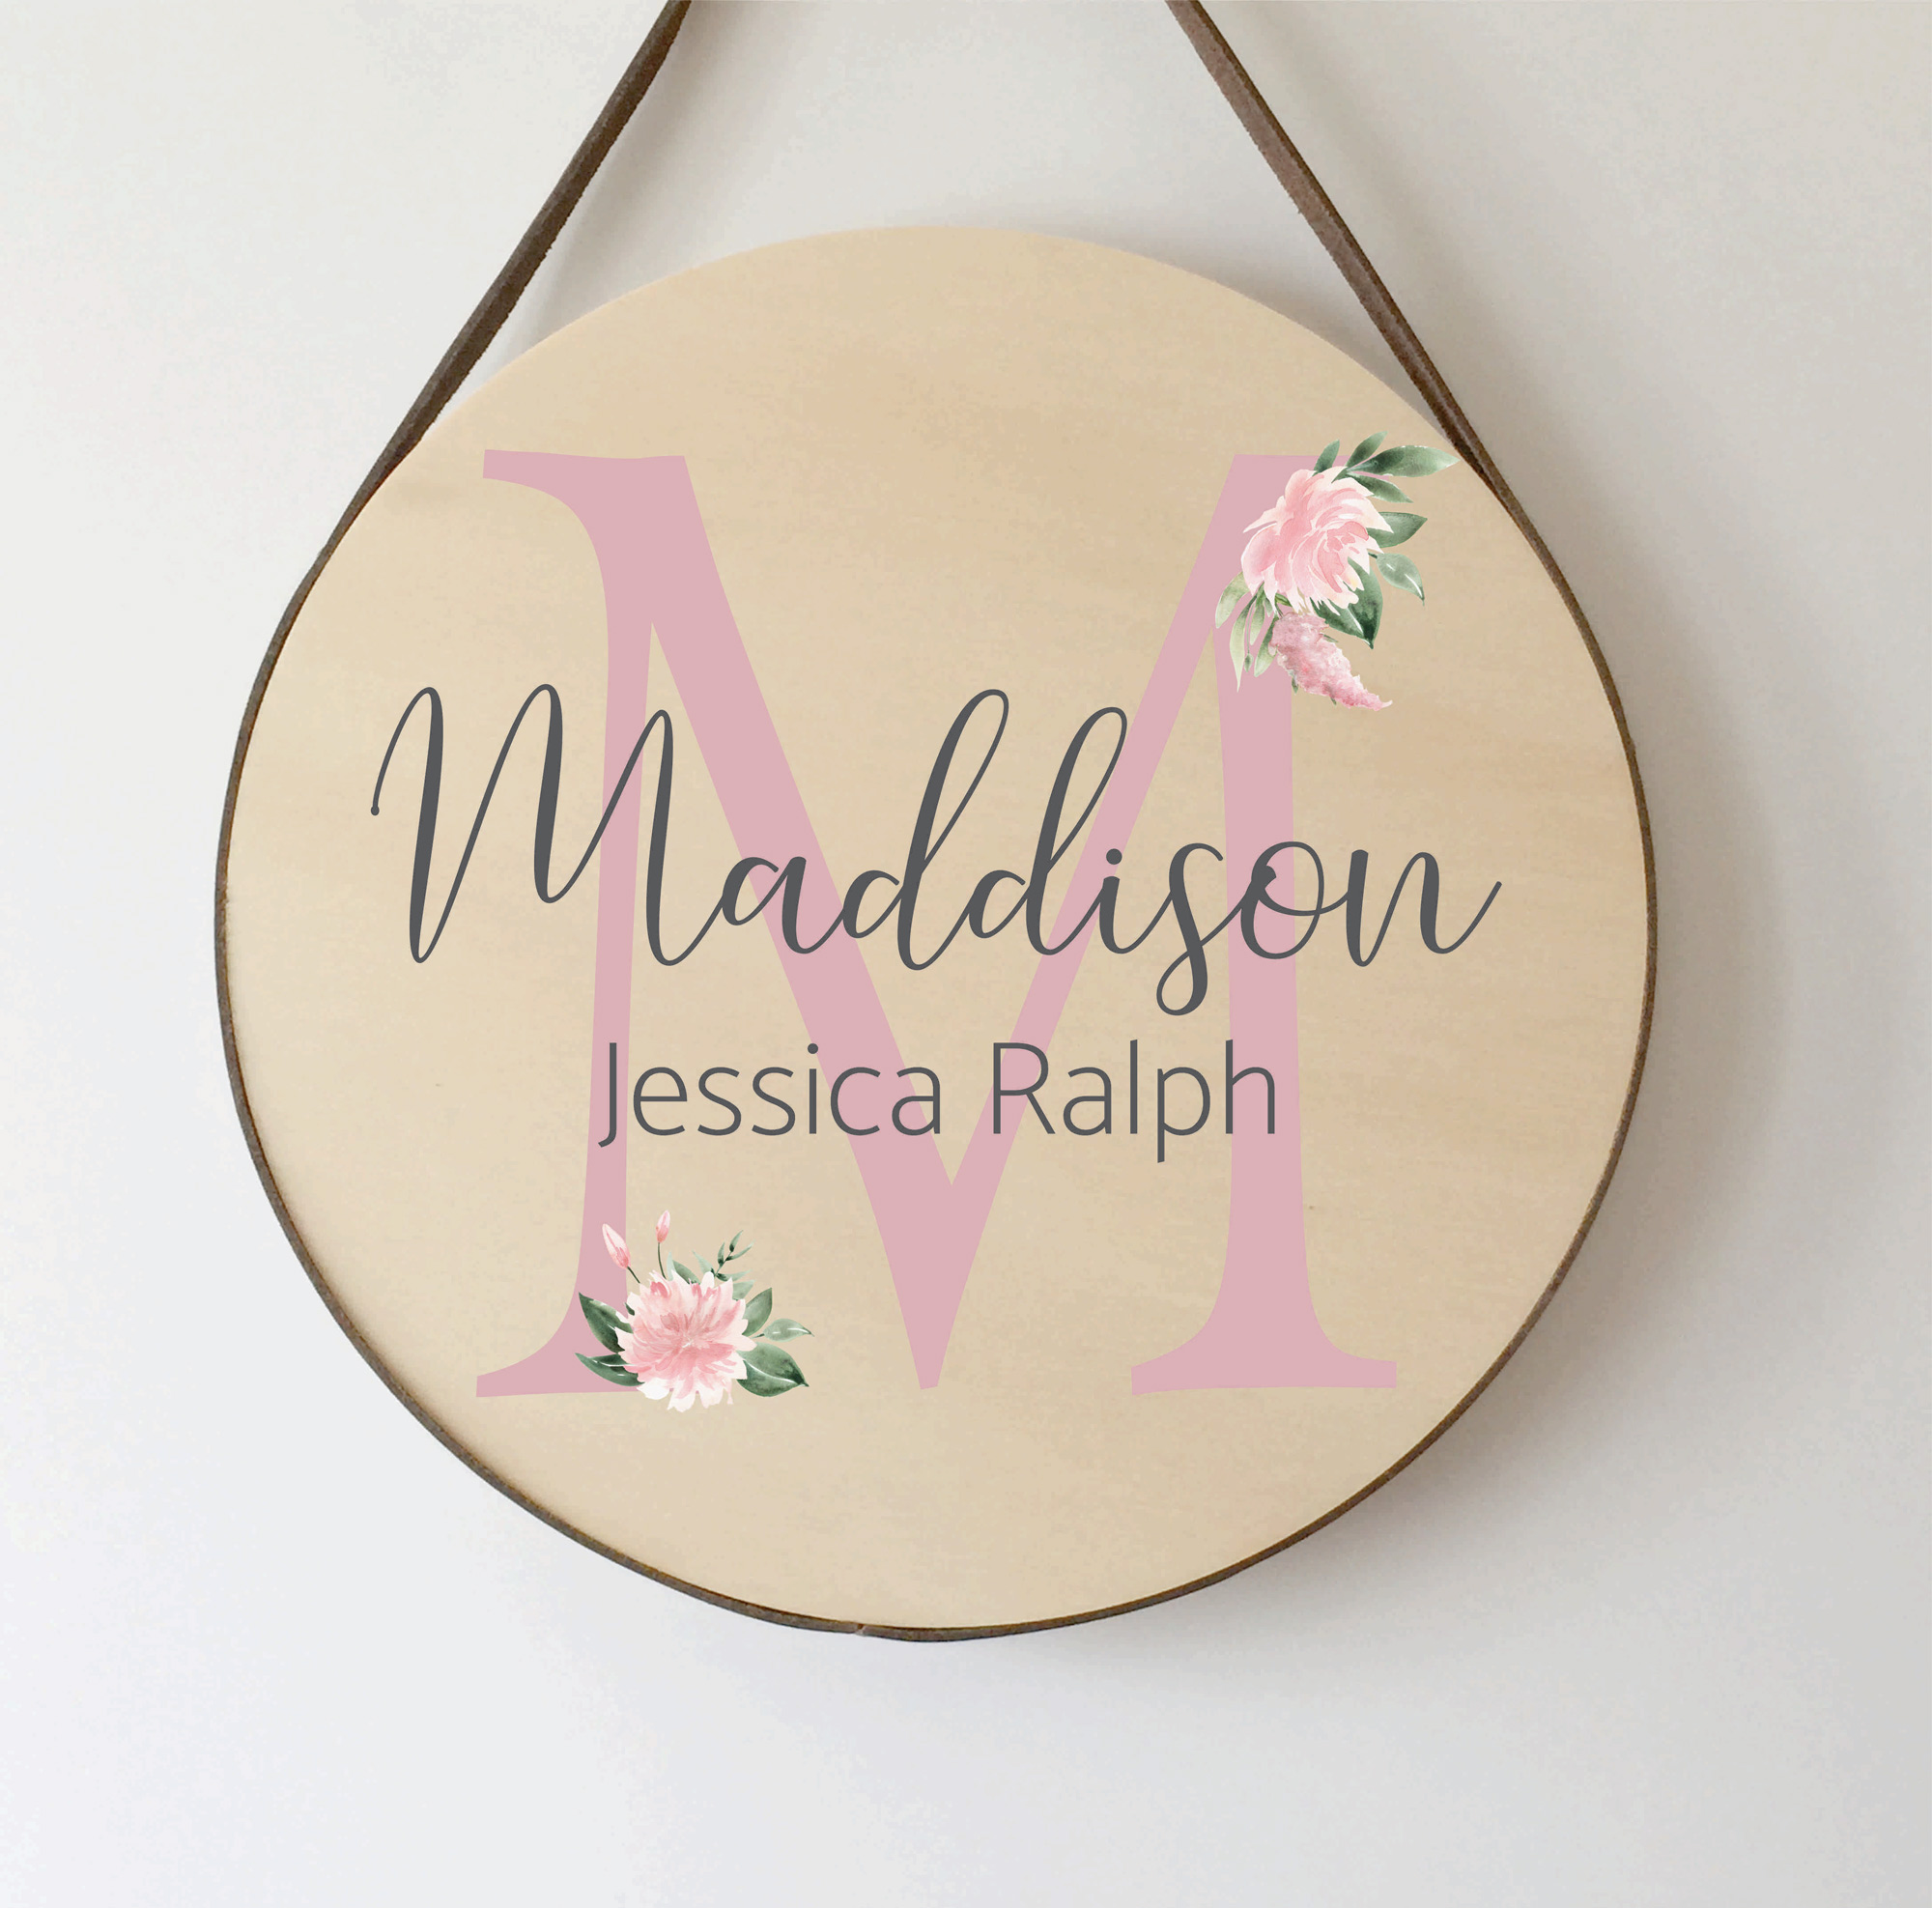 Personalised Christmas Gifts | Over 450 Gift Ideas | Australian Made